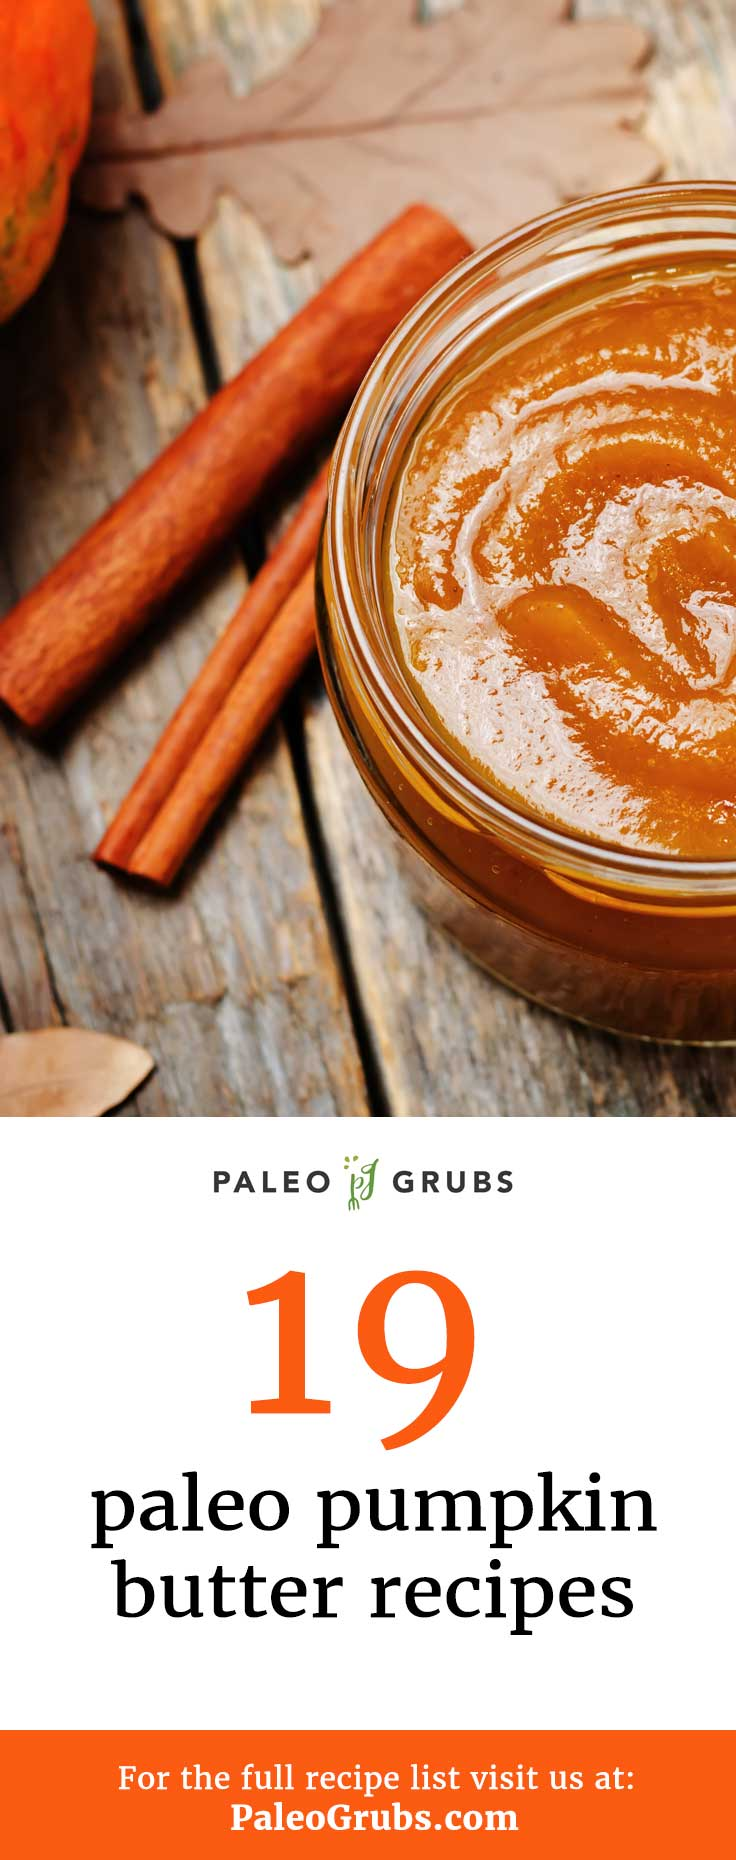 If you have not tried pumpkin butter yet, you are seriously missing out! Here are 19 of my favorite recipes.